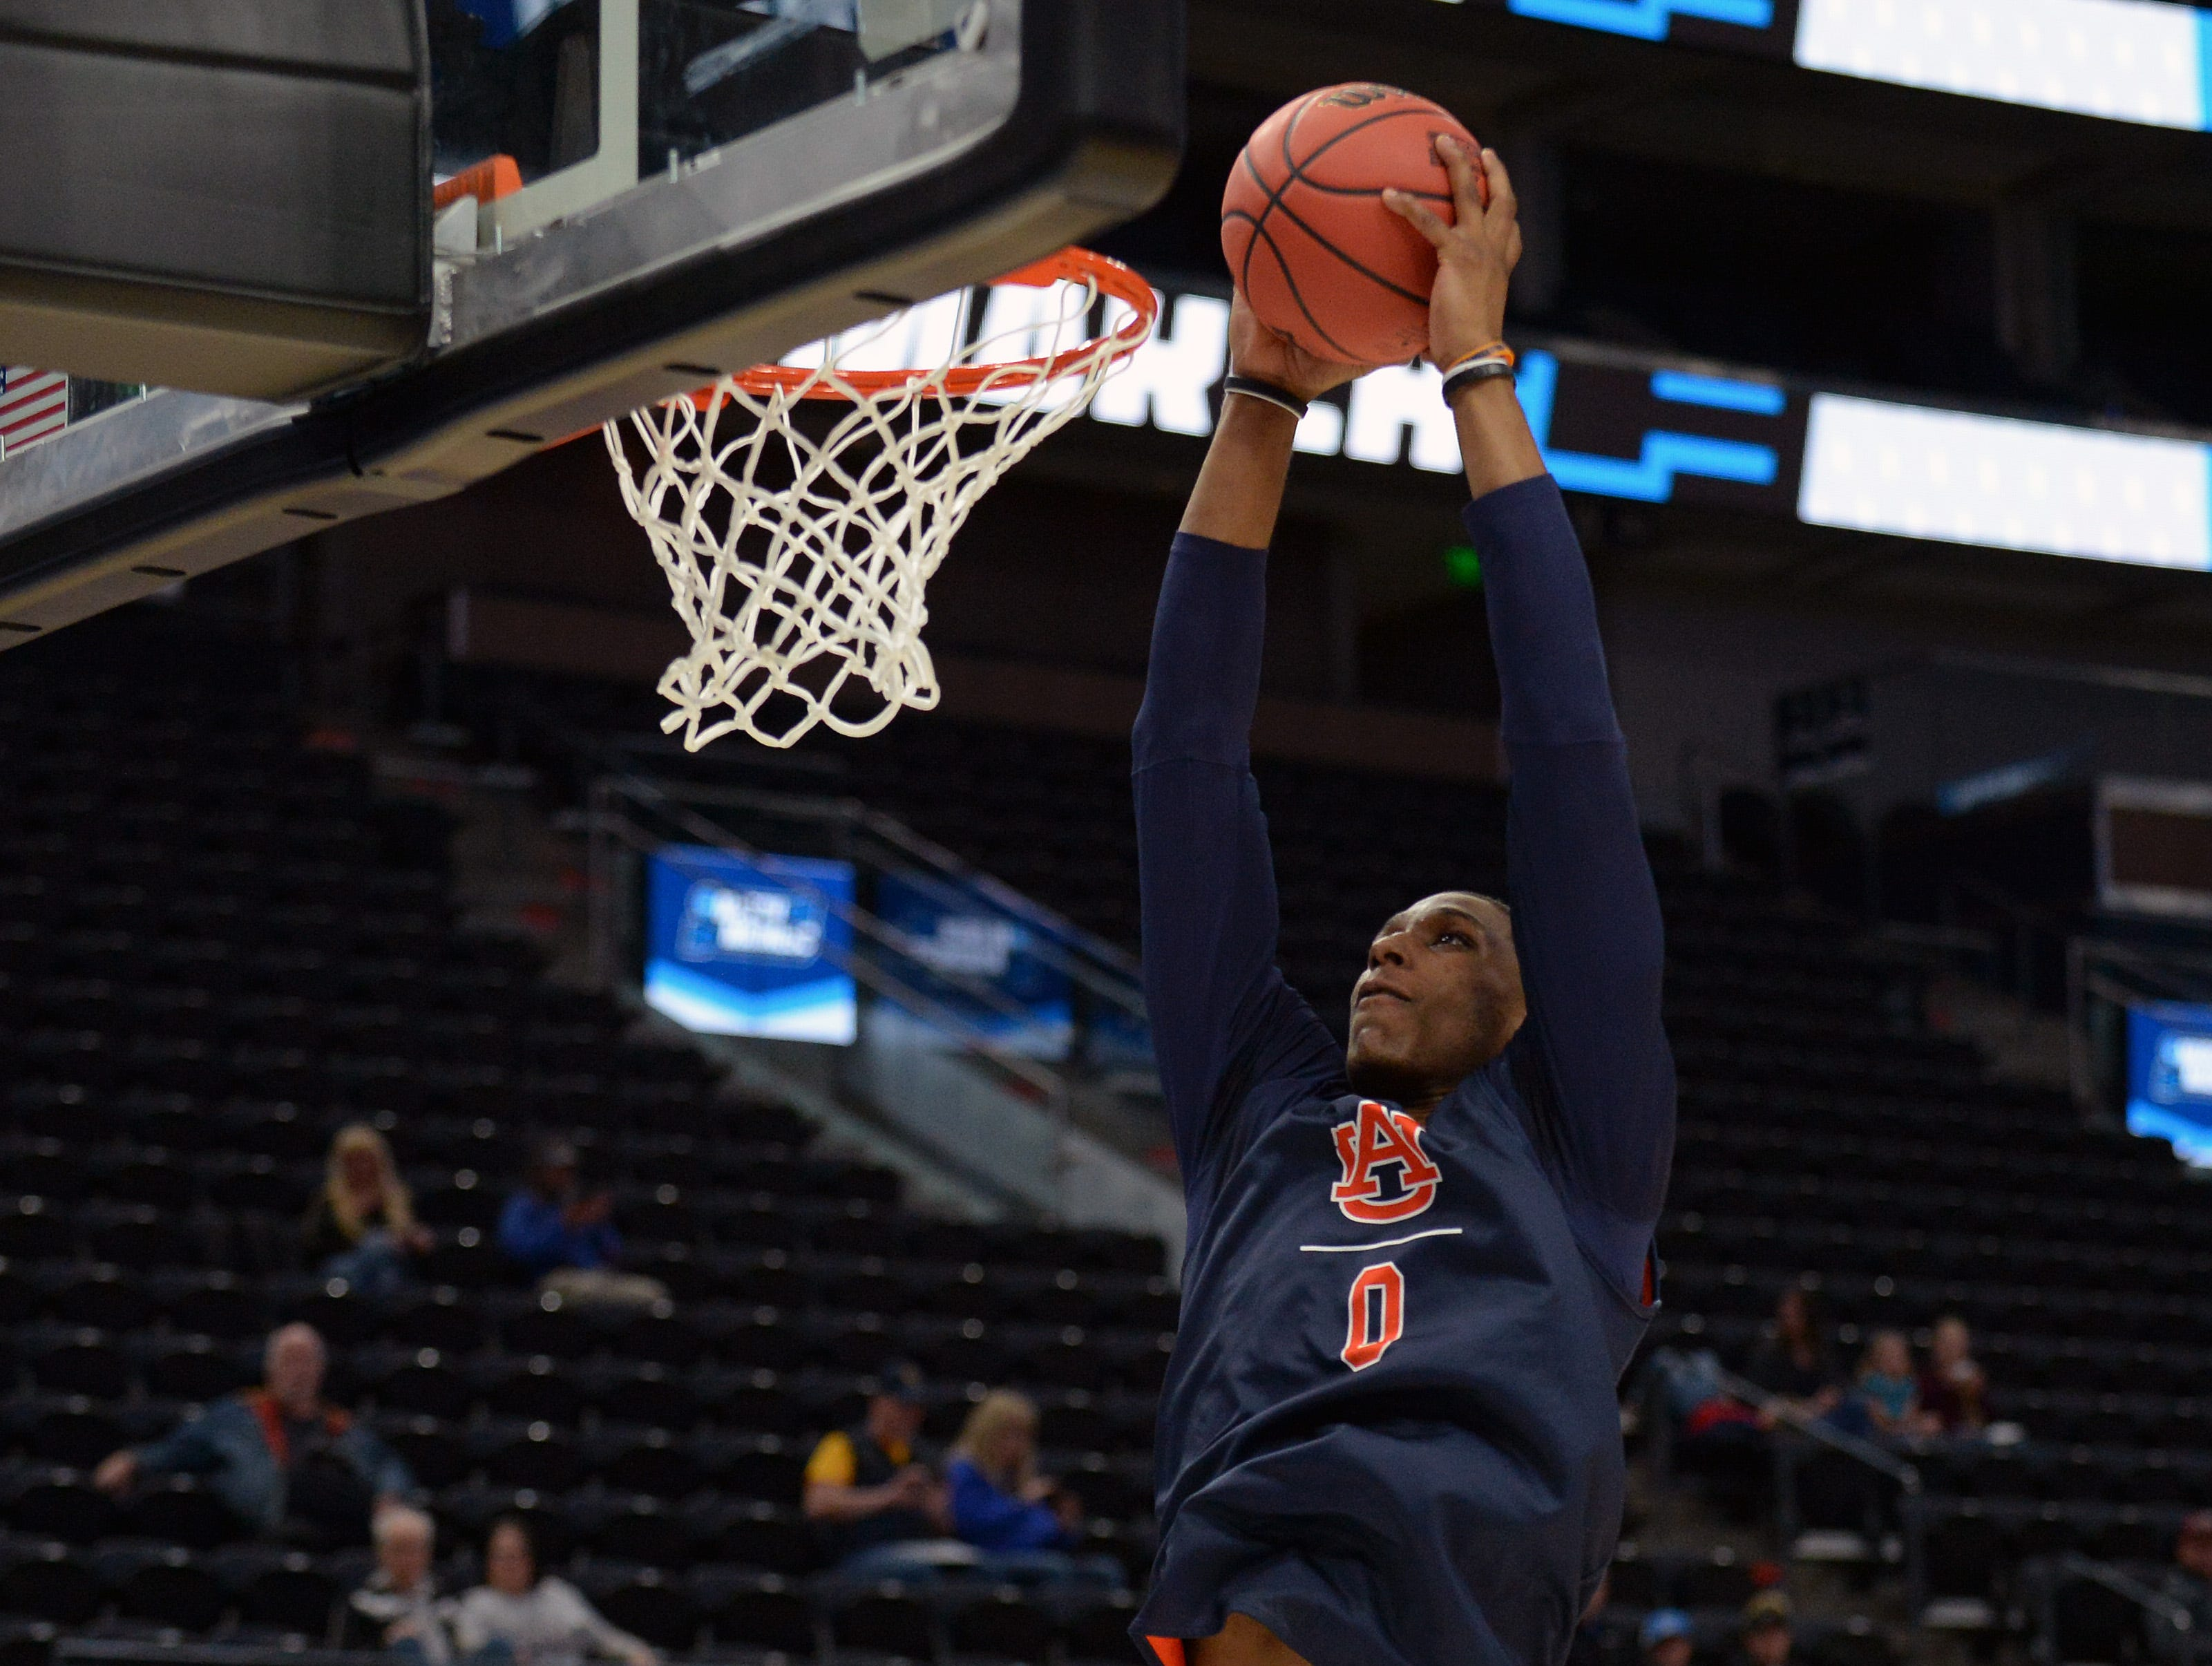 March 20, 2019; Salt Lake City, UT, USA; Auburn Tigers forward Horace Spencer (0) during practice before the first round of the 2019 NCAA Tournament at Vivint Smart Home Arena. Mandatory Credit: Gary A. Vasquez-USA TODAY Sports